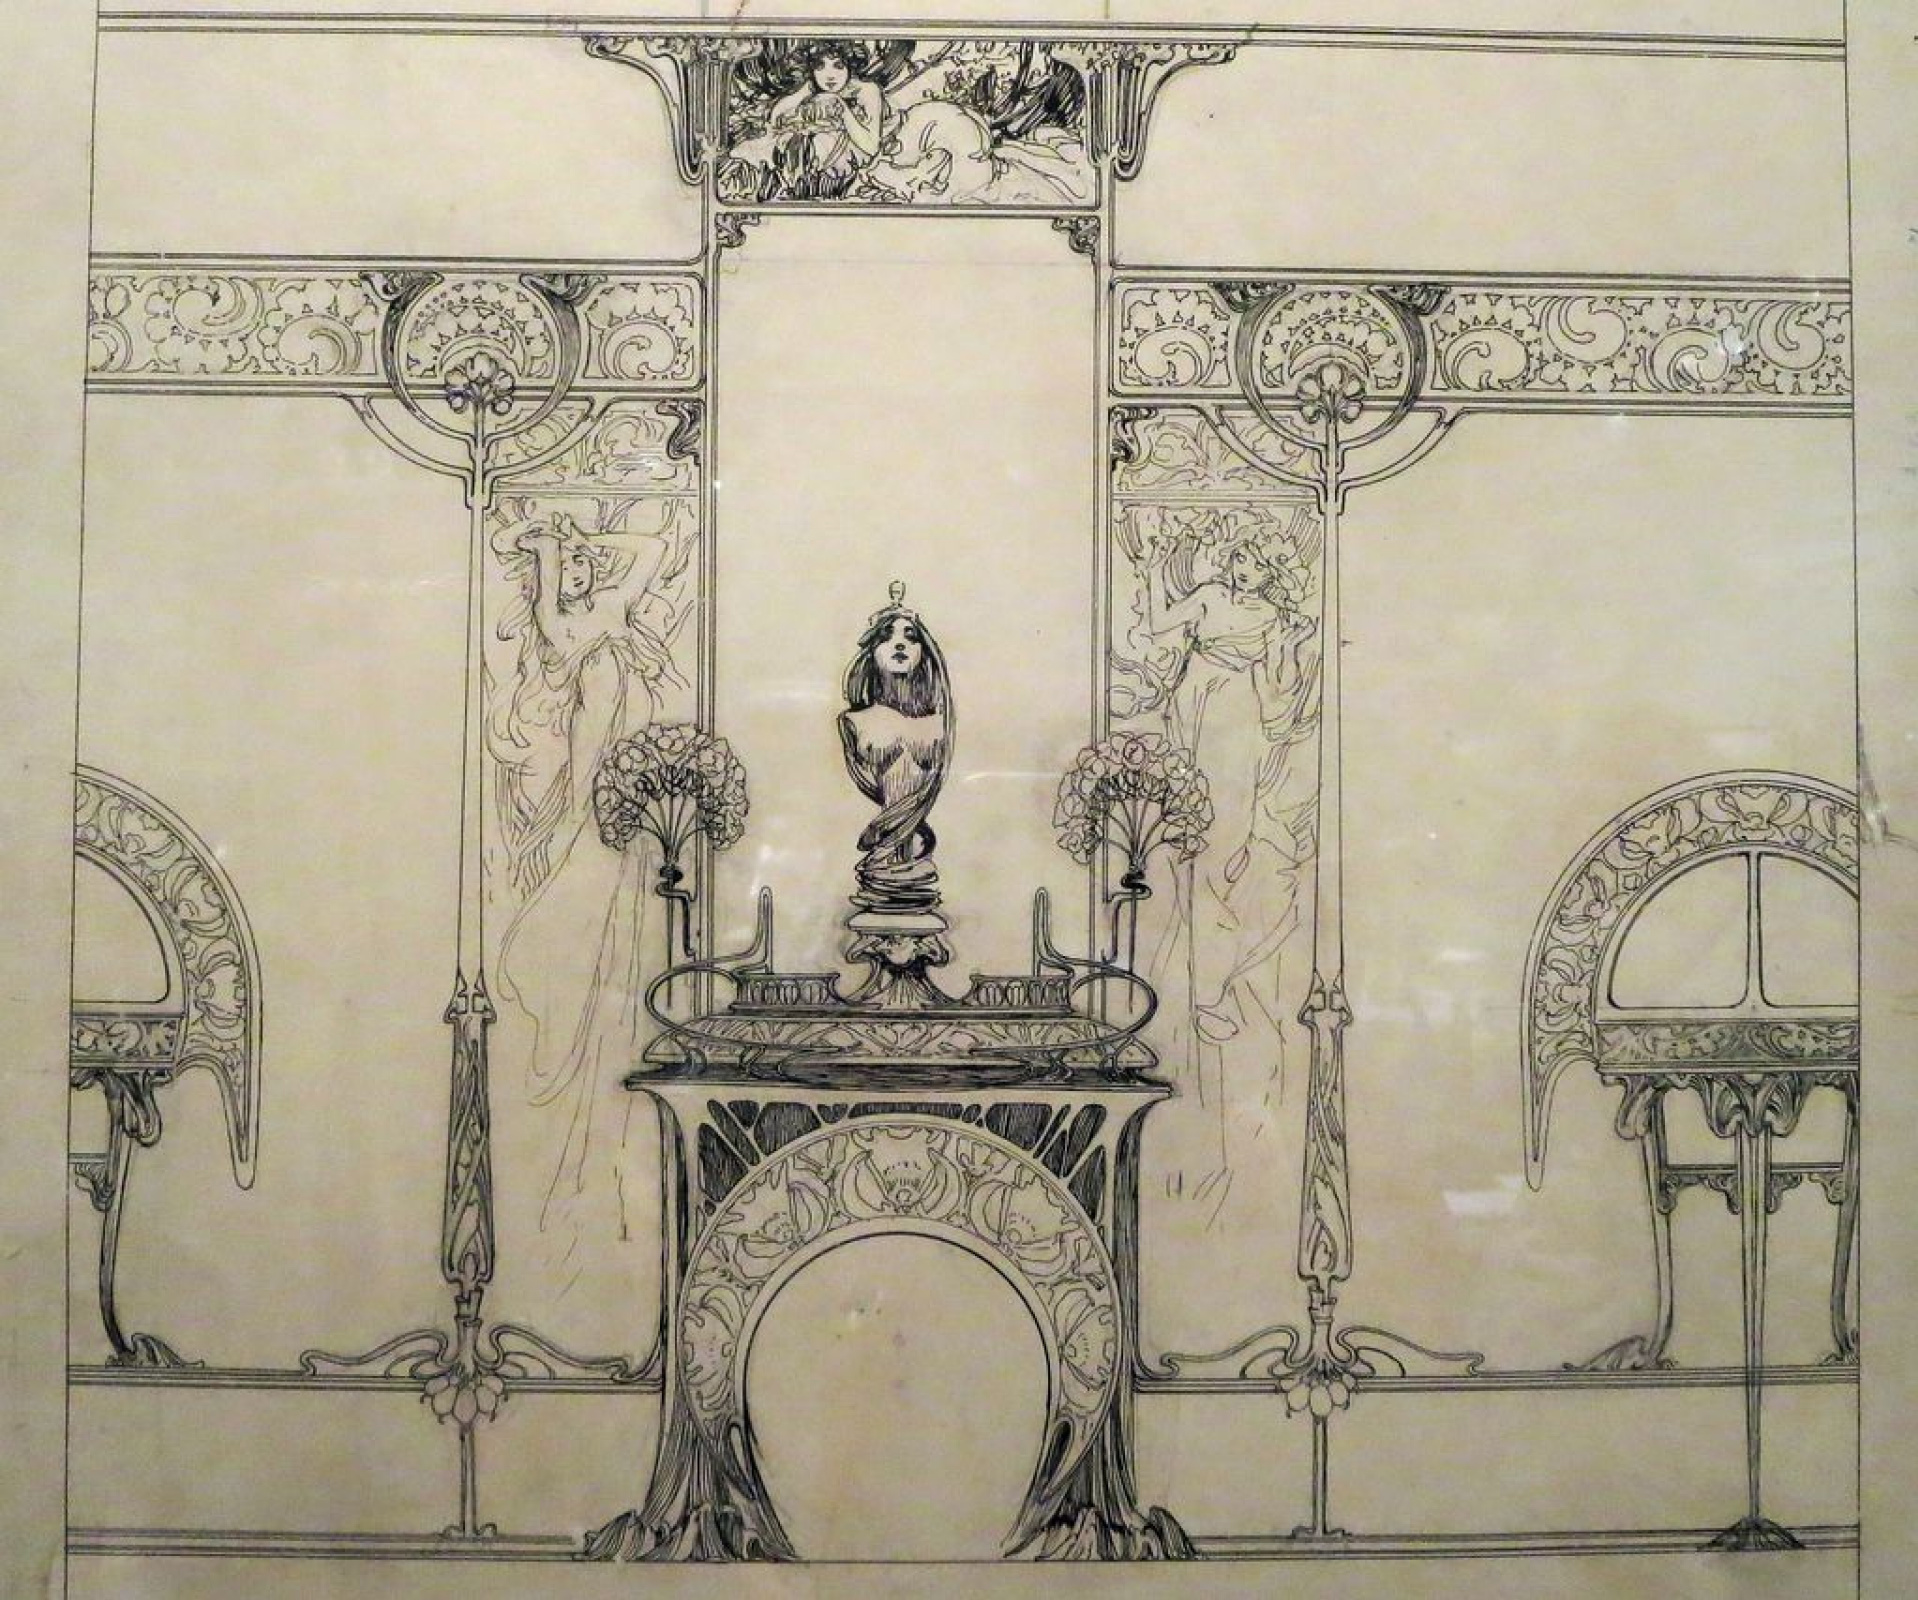 Alphonse Mucha. A sketch of the interior jewelry boutique of Georges Fouquet